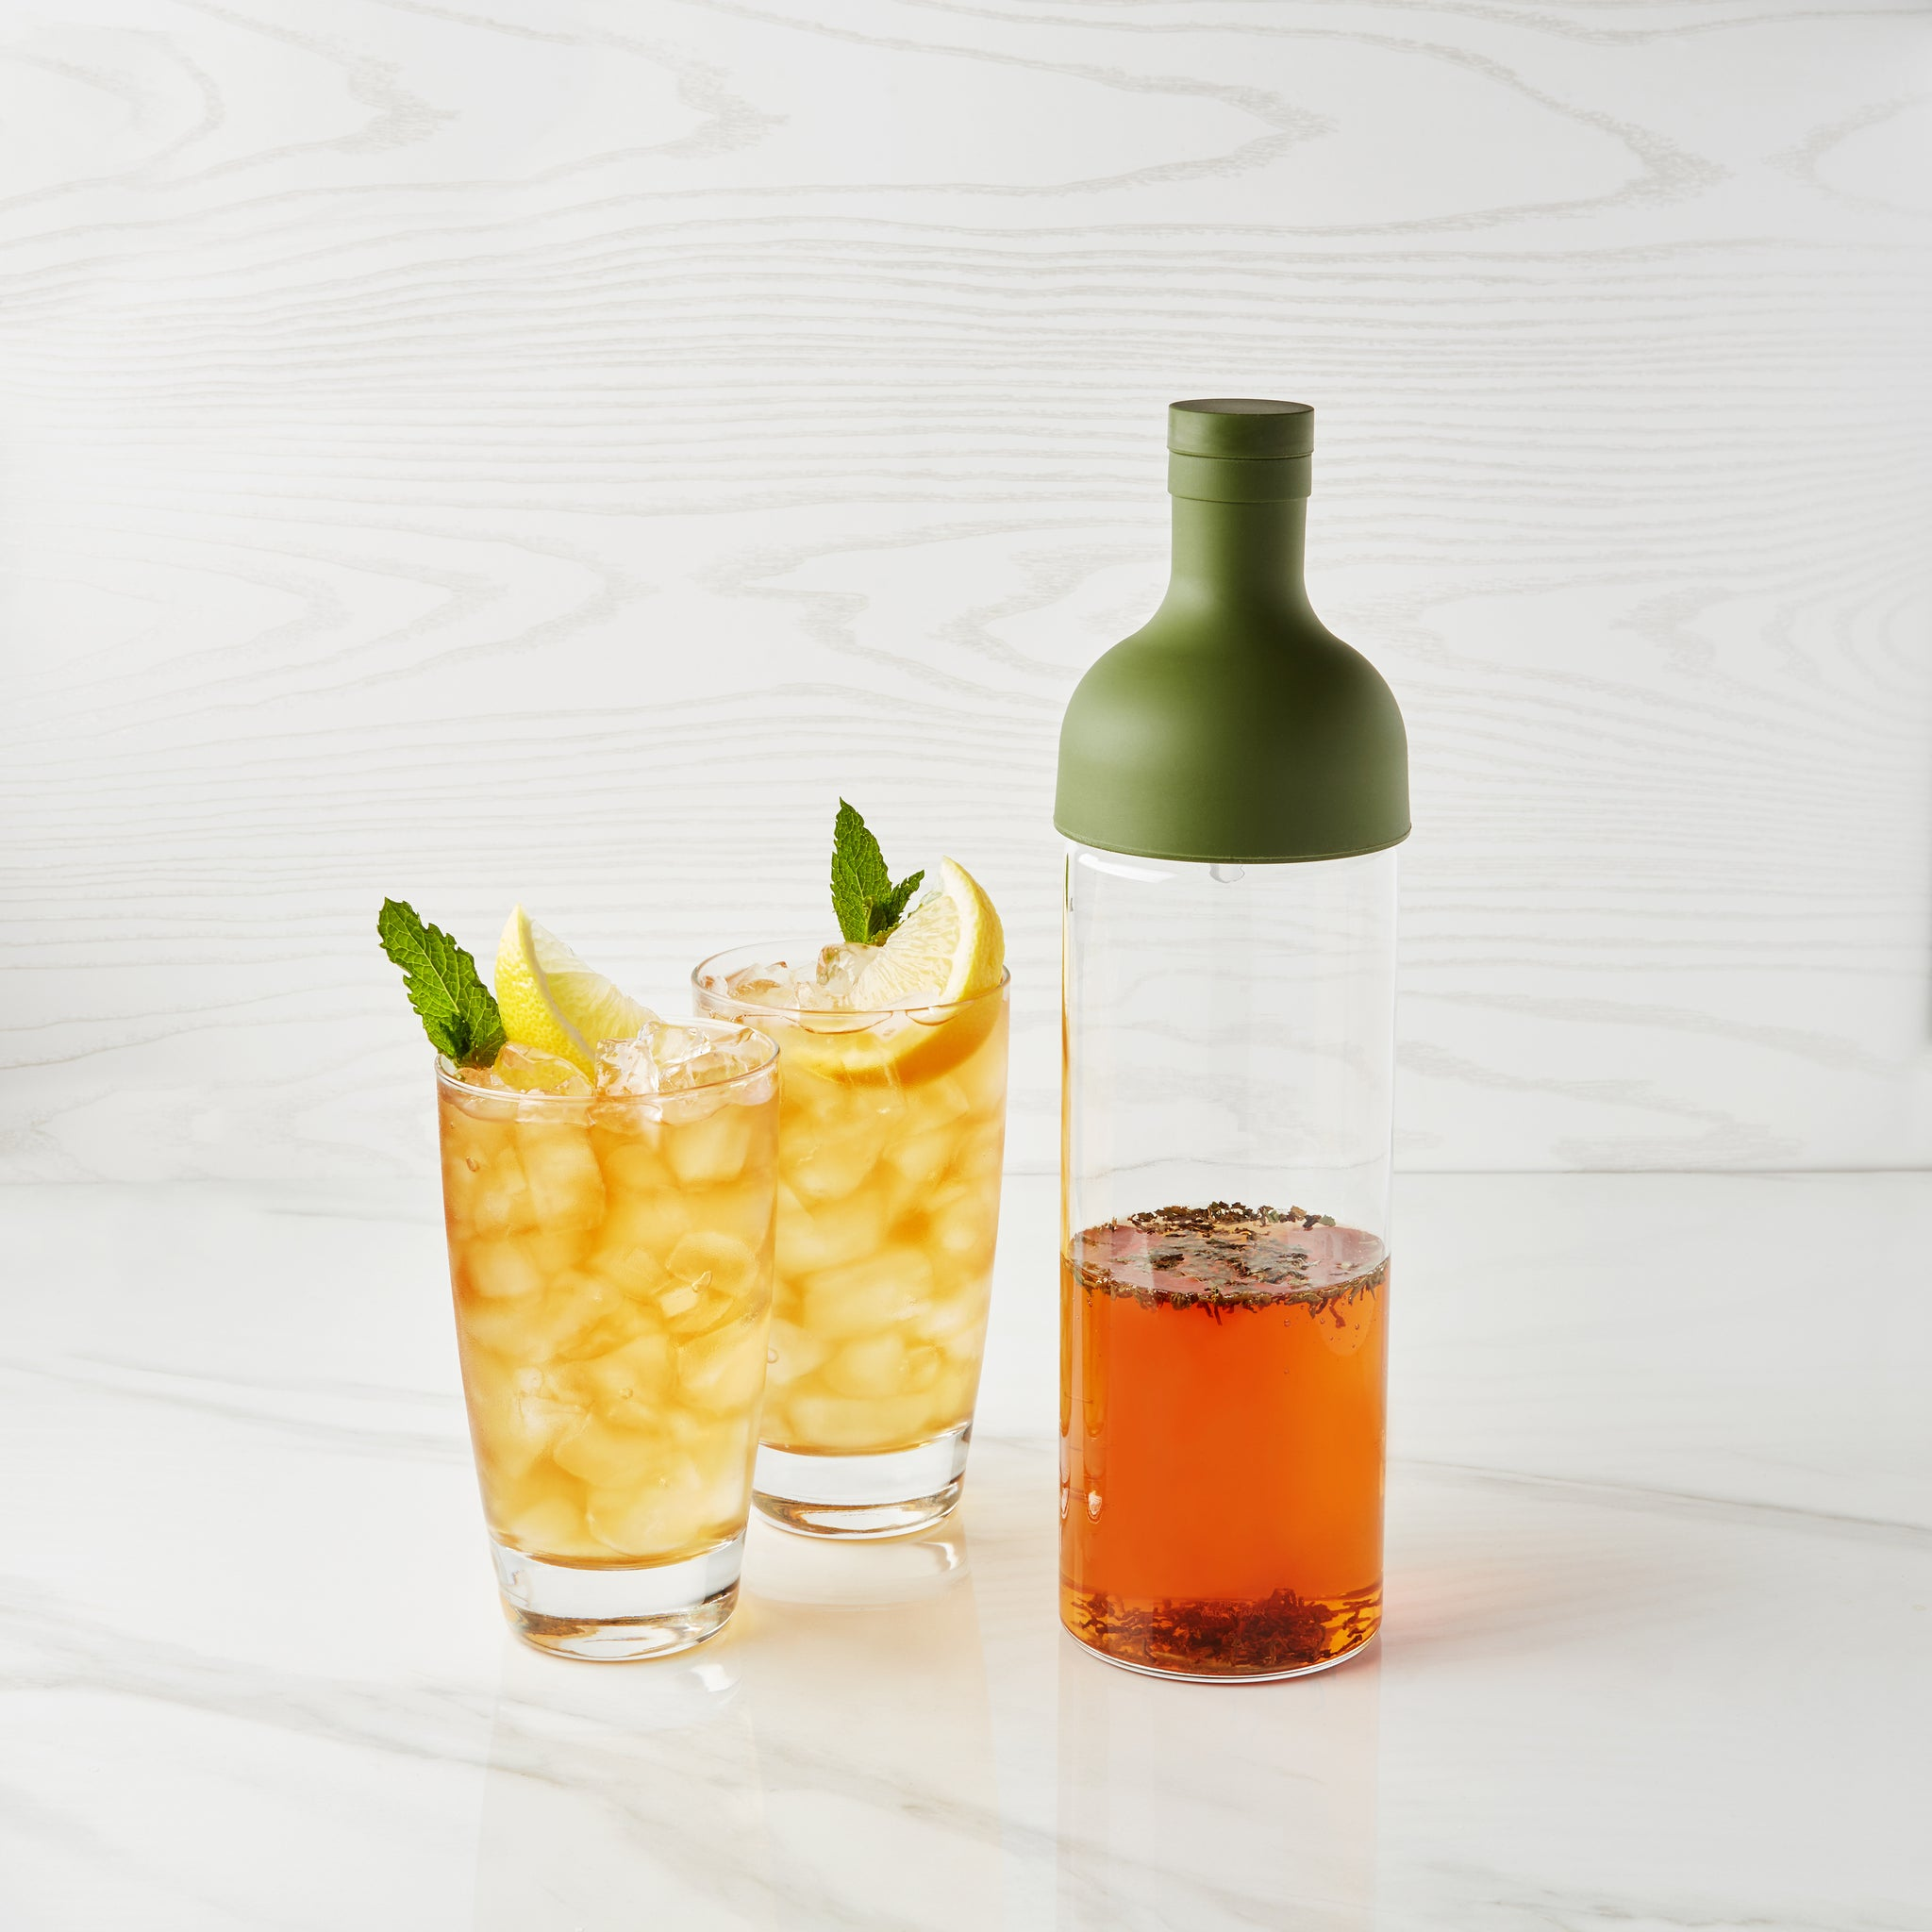 Hario filter-in cold brew bottle and glasses of cold brew tea